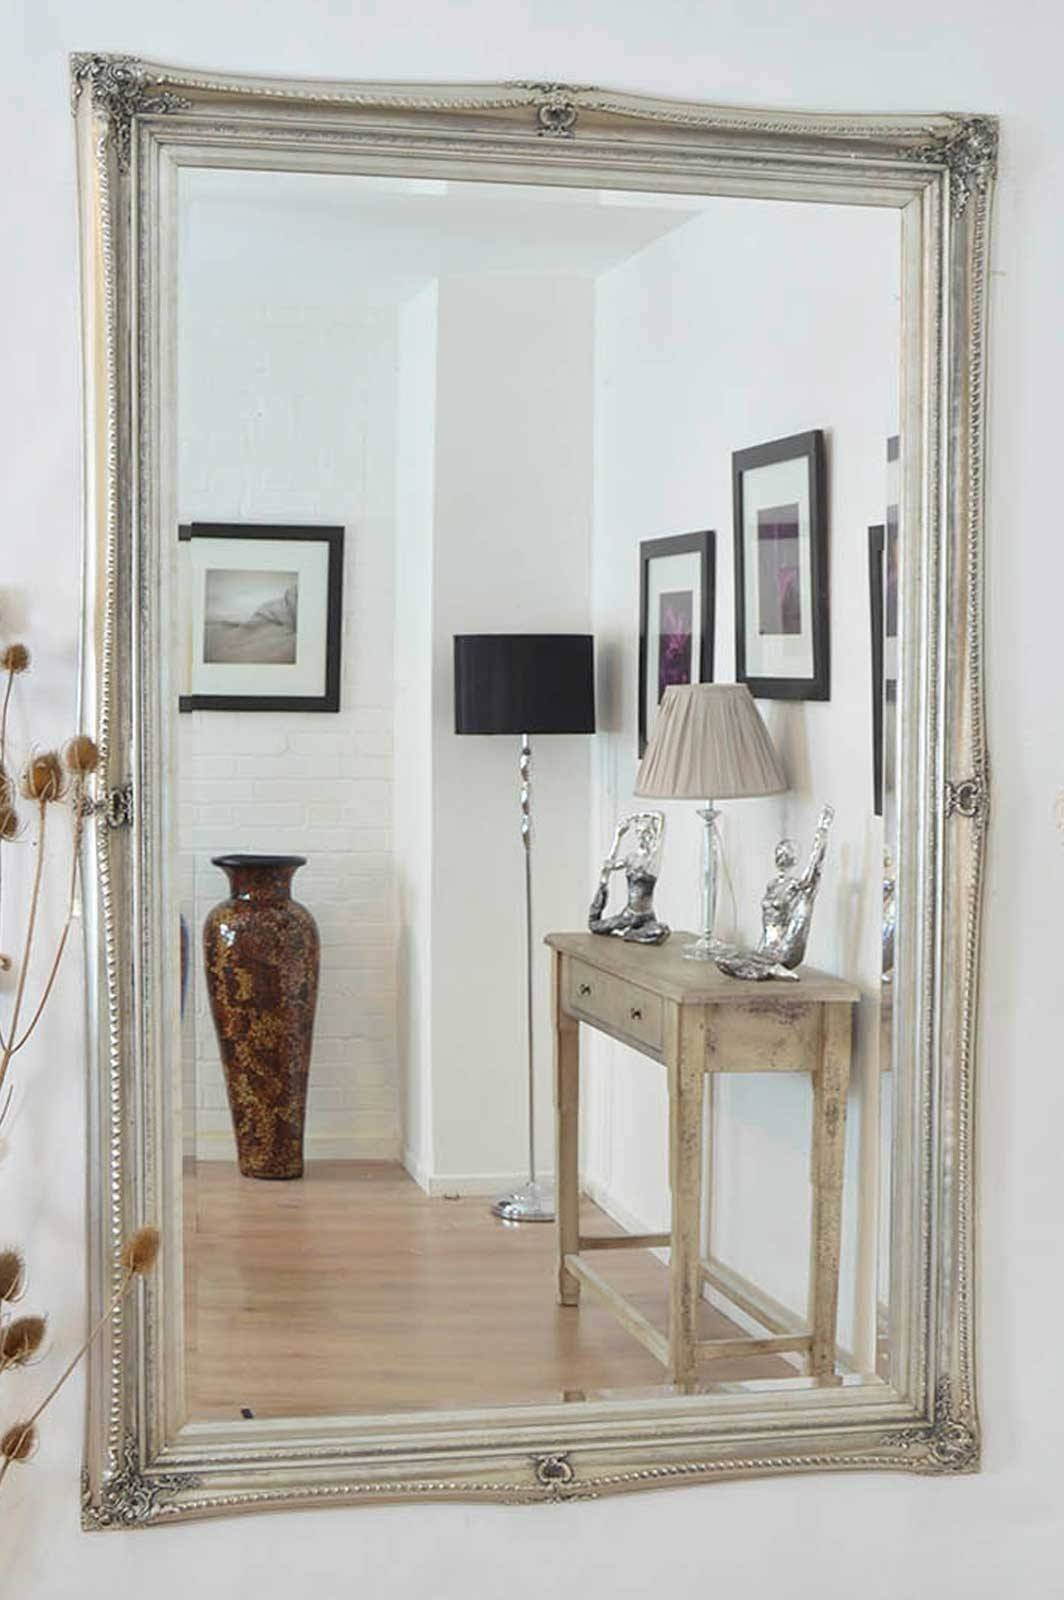 Ergonomic Shabby Chic Bathroom Mirror With Shelf Hd Pictures Of with Shabby Chic Mirrors With Shelf (Image 5 of 15)